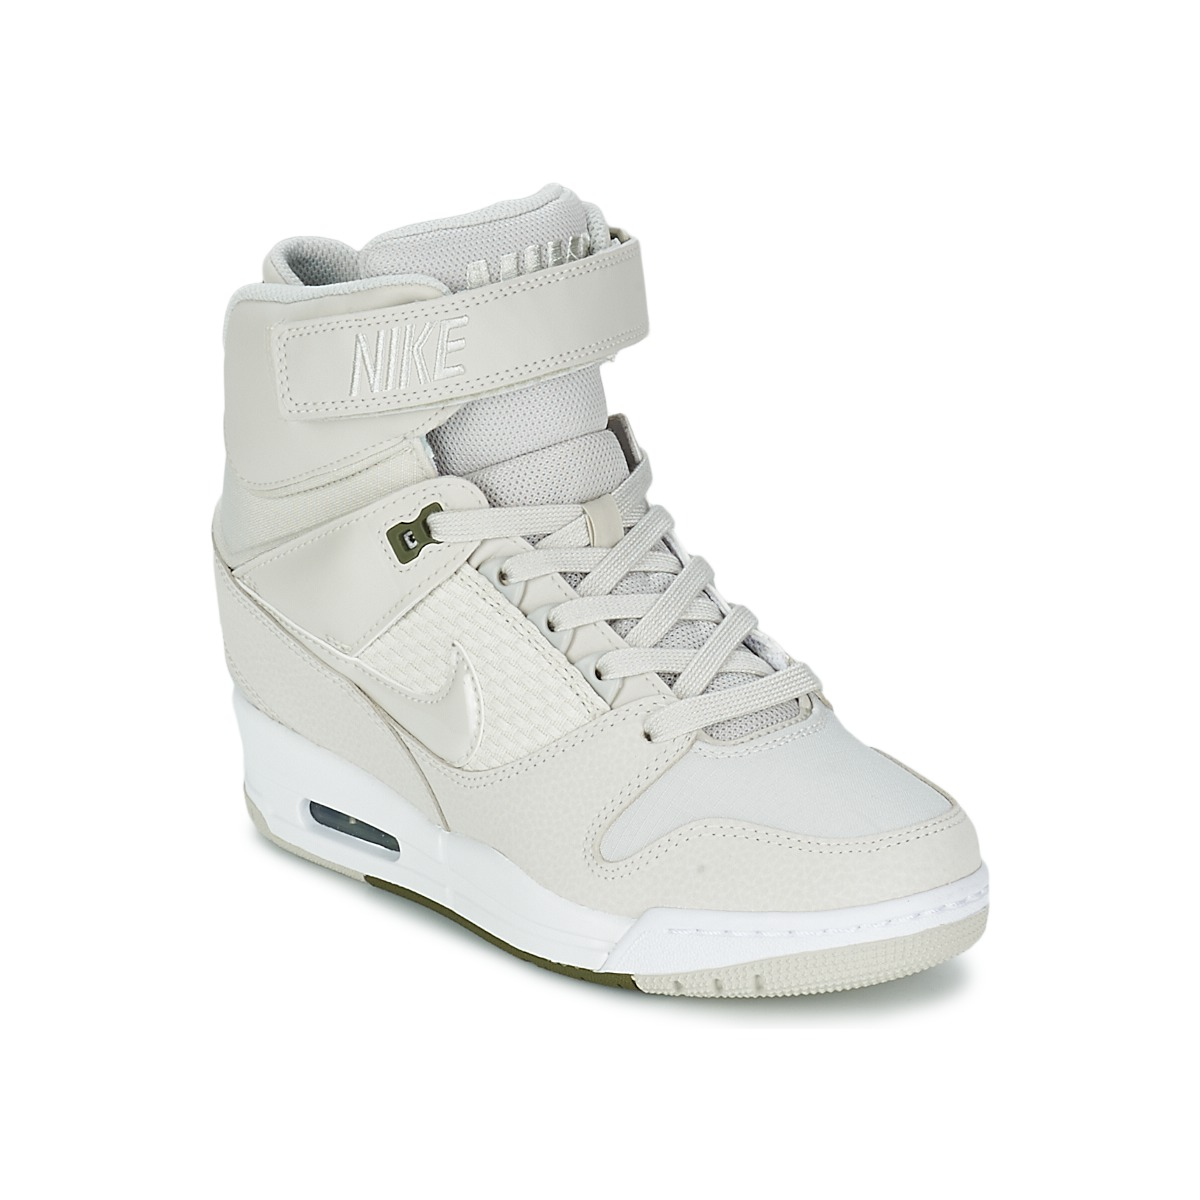 separation shoes a0e4b 0f1cb Baskets montantes Nike AIR REVOLUTION SKY HI Blanc, Baskets Femme ...